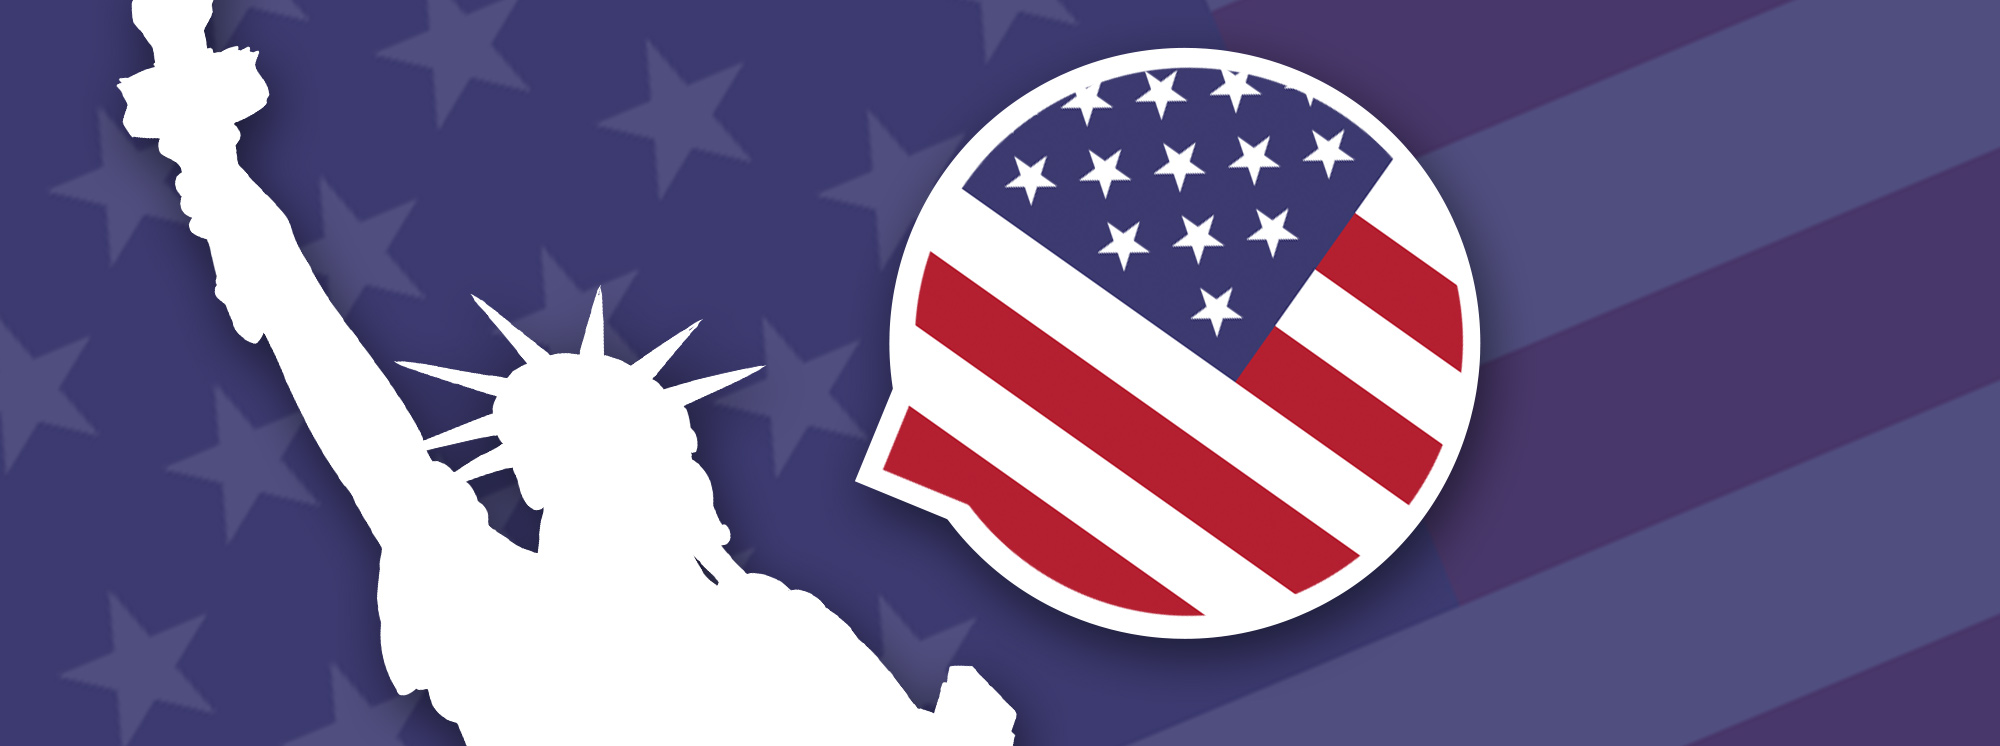 Should English Be the Official Language of the U.S.?